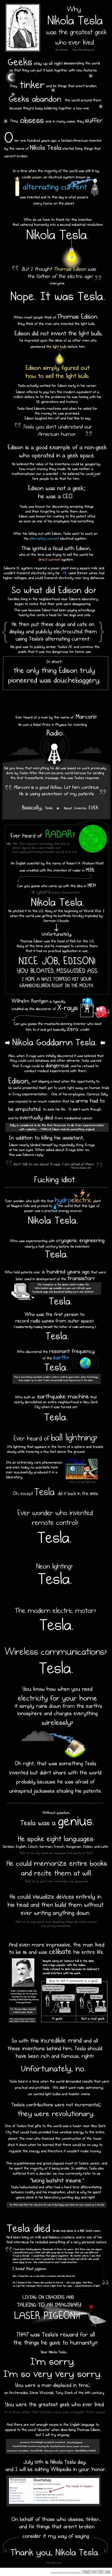 I know at least half of this is true, not sure about the other half, but the point is still the same, Thomas Edison was a jerk who executed animals (at one point he even executed a retired circus elephant) with AC electricity, and Nikola Tesla was just plain awesome.